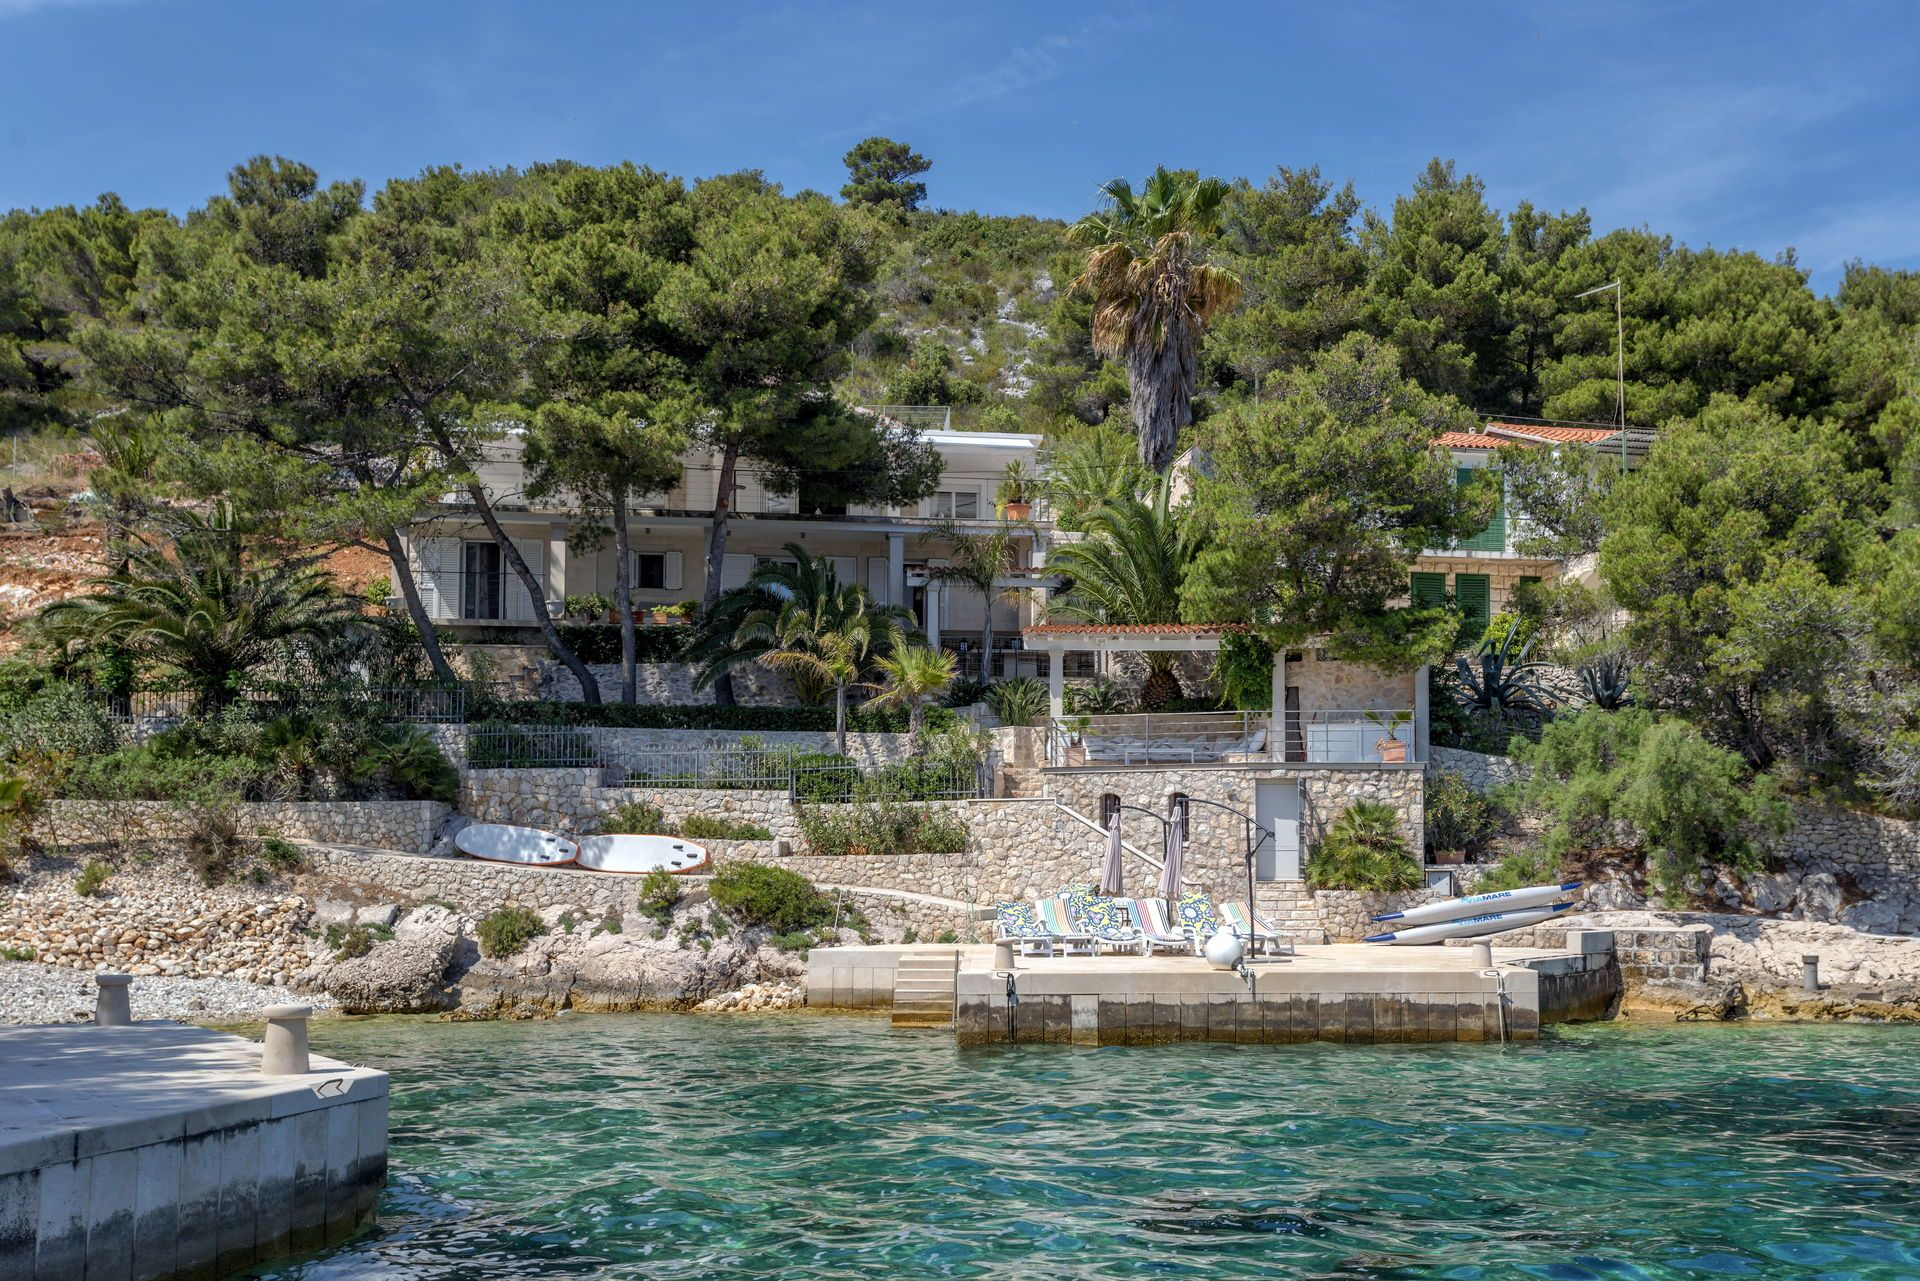 The 6 Bedroom Pet Friendly Villa For Rent Hidden In A Peaceful Bay Near Hvar Town Is Perfect For A Summer Escape Check Ren With Images Croatia Villas Villa Holiday Villa